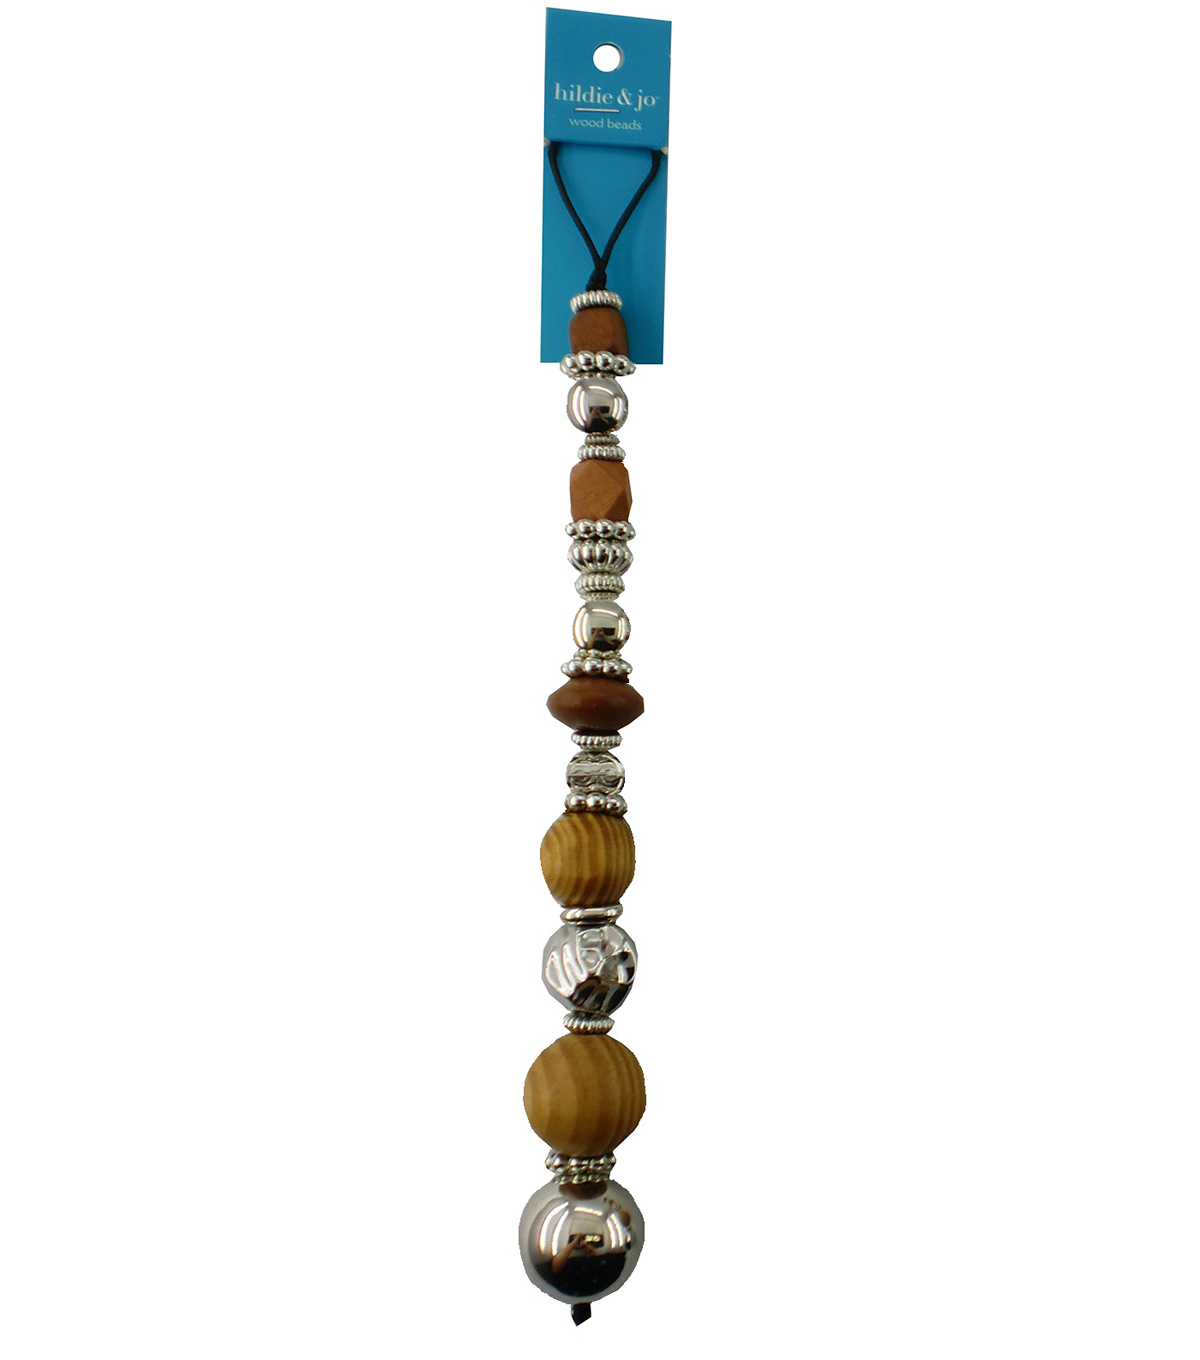 hildie & jo 7\u0027\u0027 Wood & Resin Beads Strand-Brown & Silver